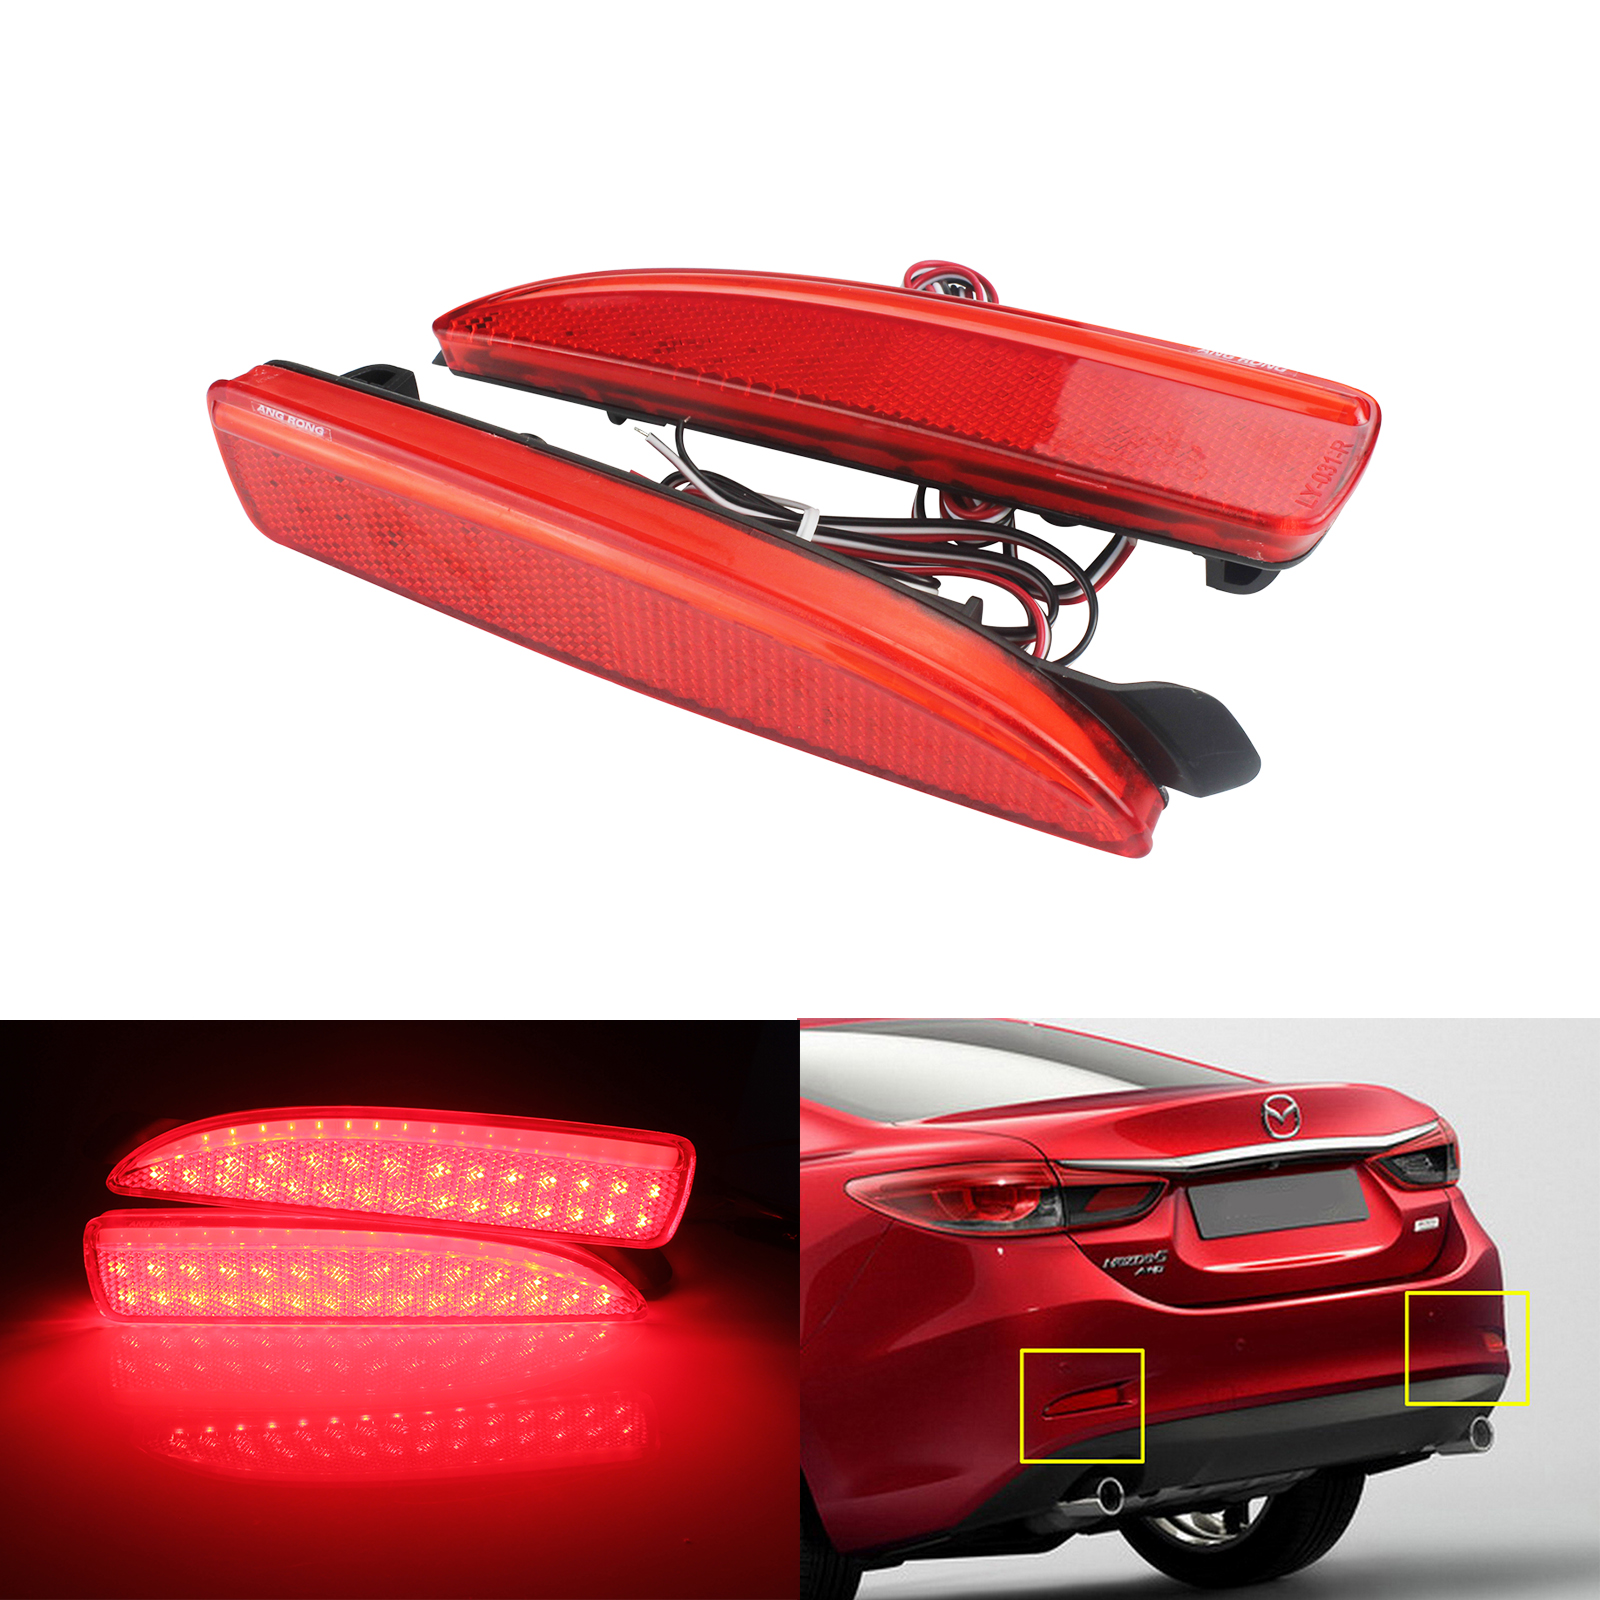 ANGRONG 2X Rear Bumper Reflector LED Tail Stop Brake <font><b>Light</b></font> For <font><b>Mazda</b></font> 2 3 5 <font><b>6</b></font> DY Axela Atenza image